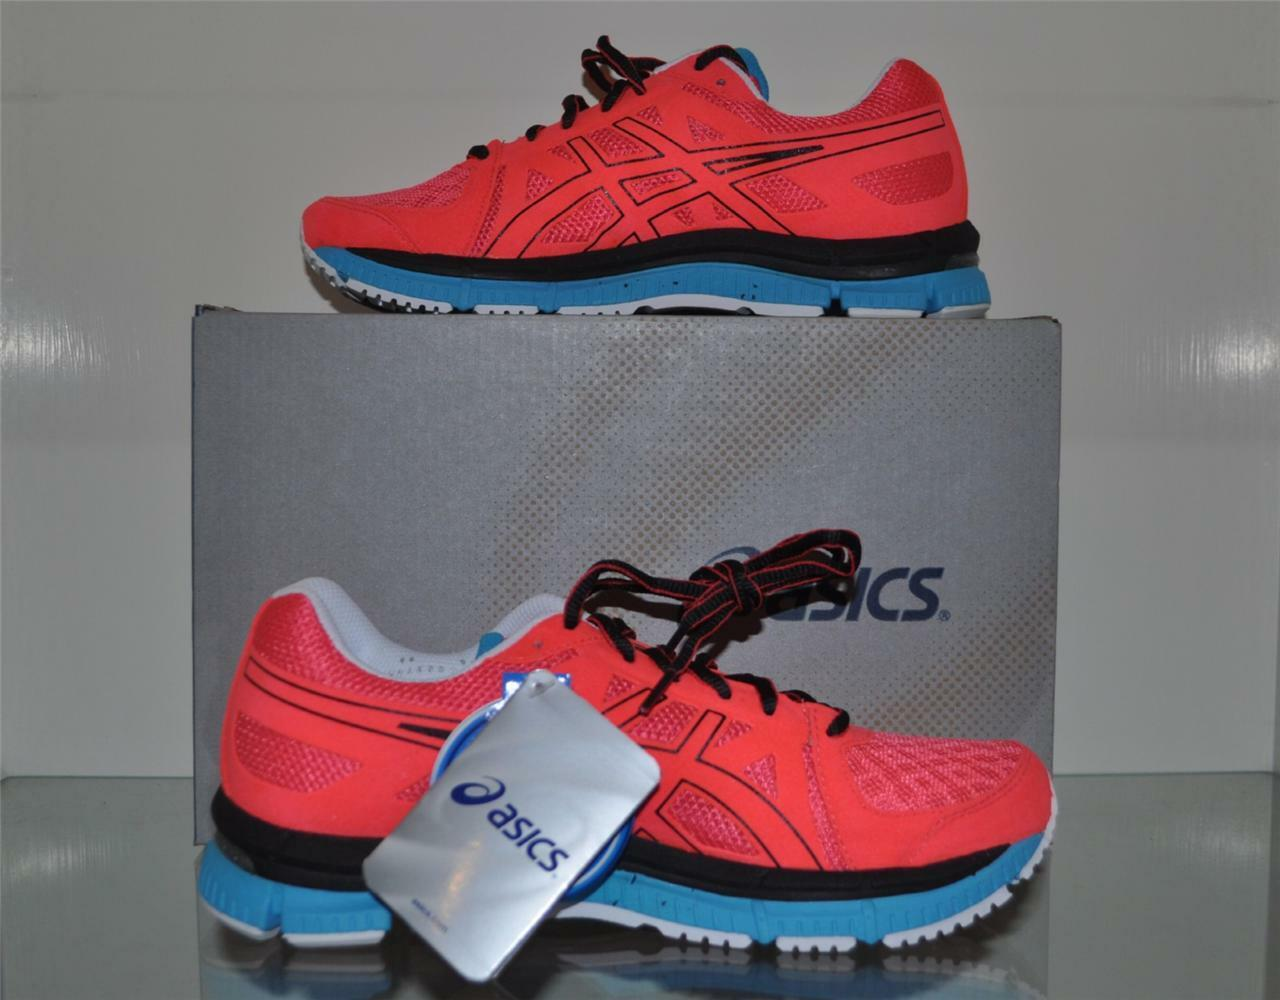 Asics GEL-NEO 33 Jogging Running Shoes Womens NIB US 6 EURO 37 cm 23 The latest discount shoes for men and women